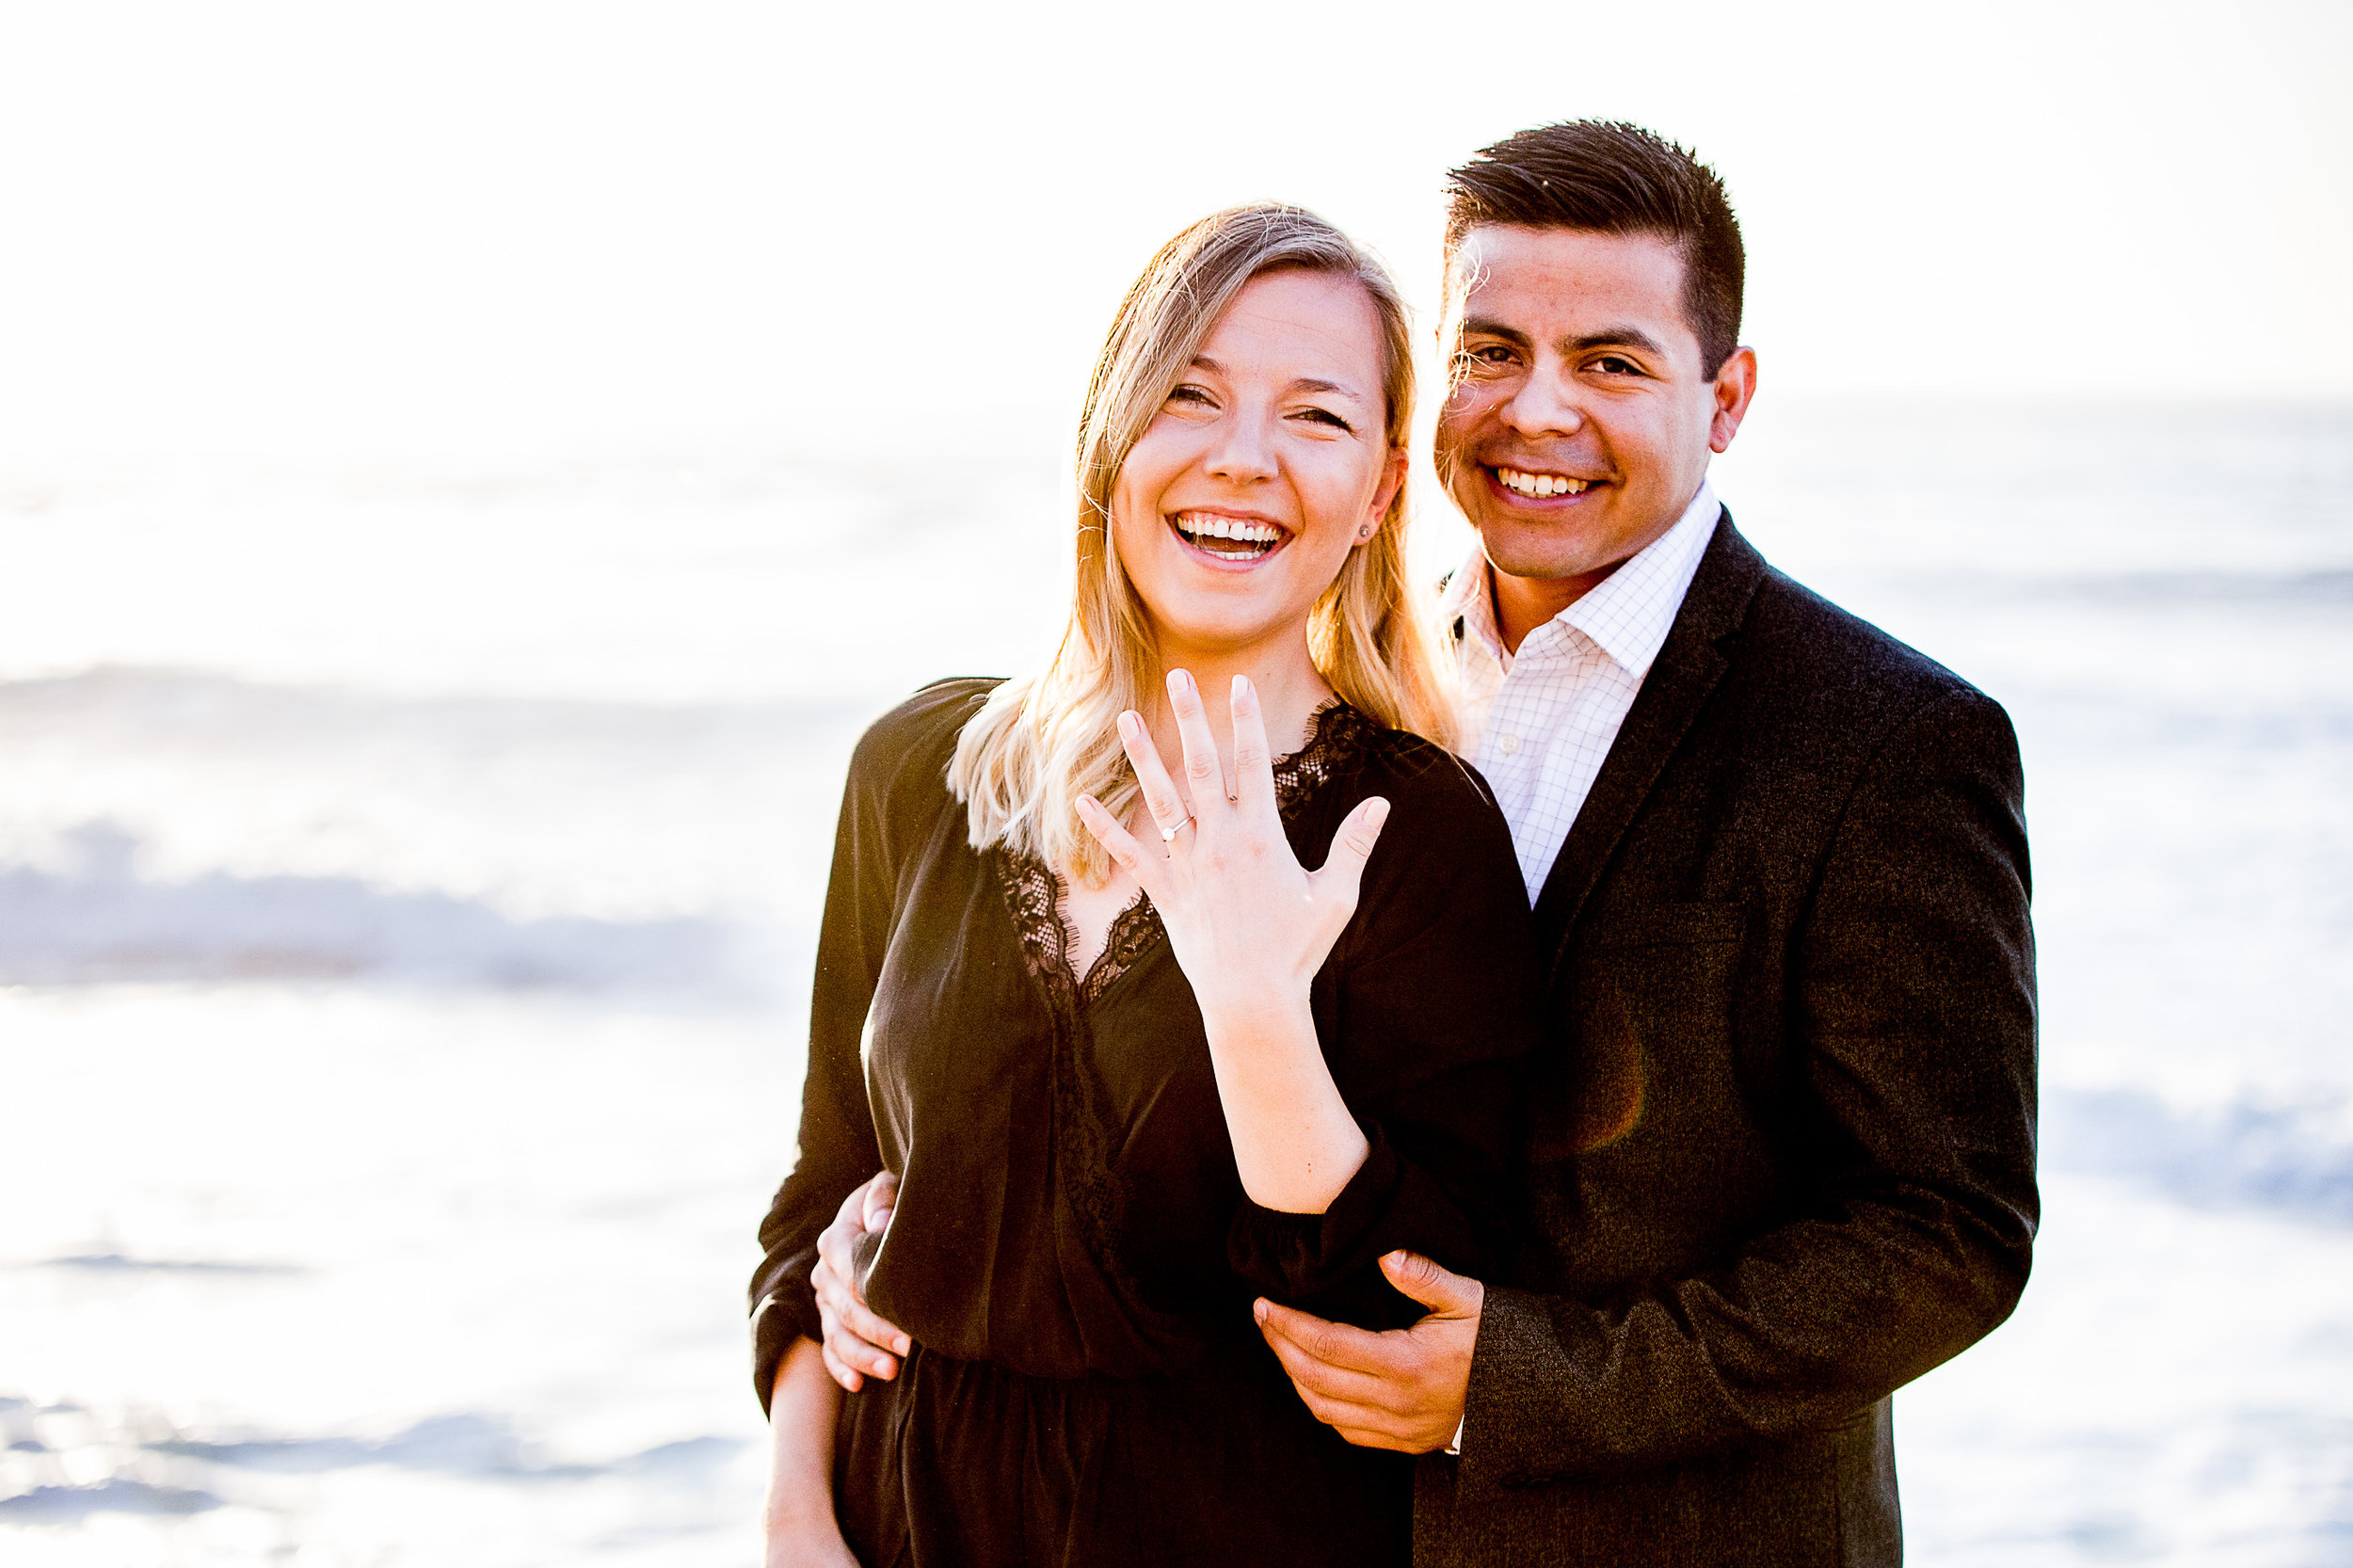 La-jolla-cove-proposal-chicago-natives-san-diego-sunset-golden-hour-love-story-engaged-alligator-head (83 of 158).jpg